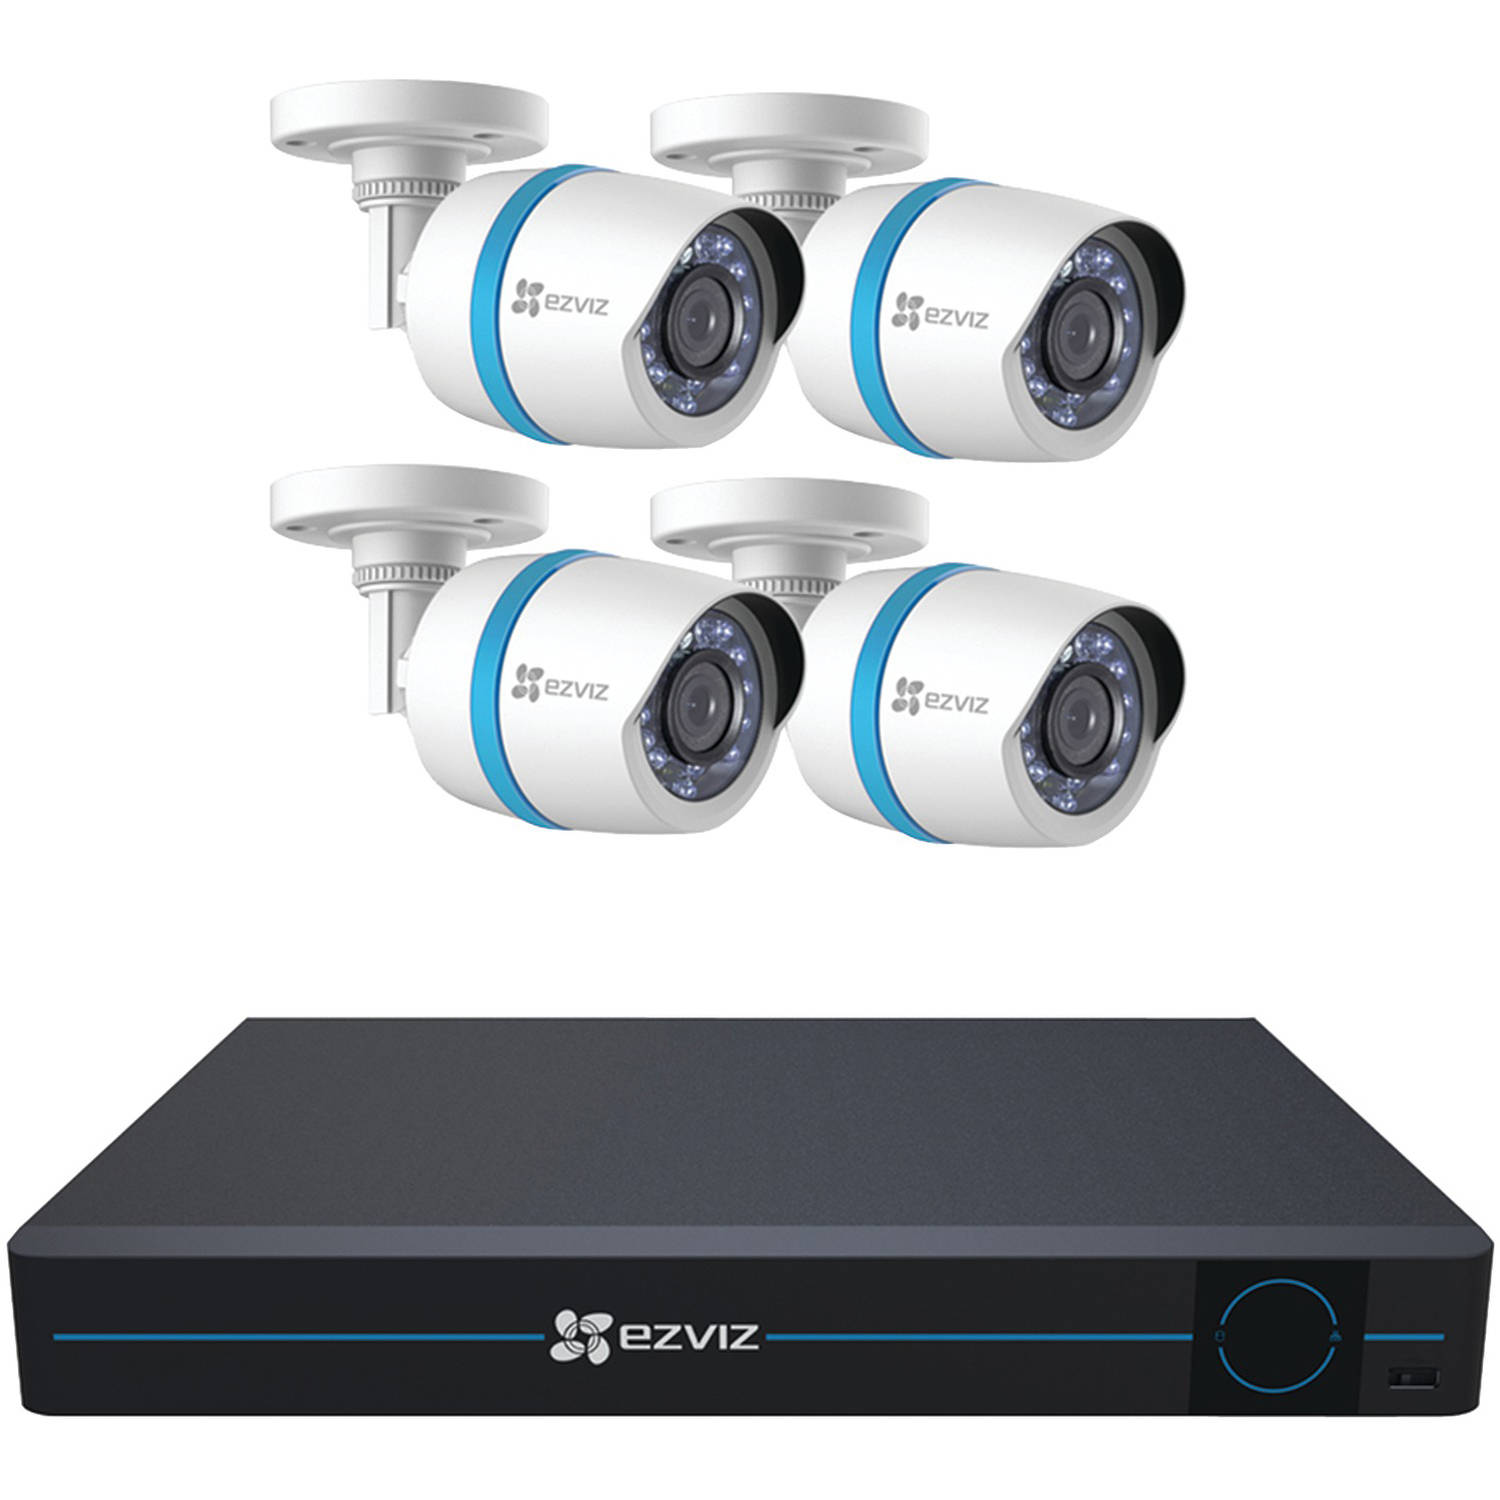 Ezviz 8-Channel 1080p IP Security System with 2TB HDD and 4 Weatherproof 1080p PoE Bullet IP Cameras